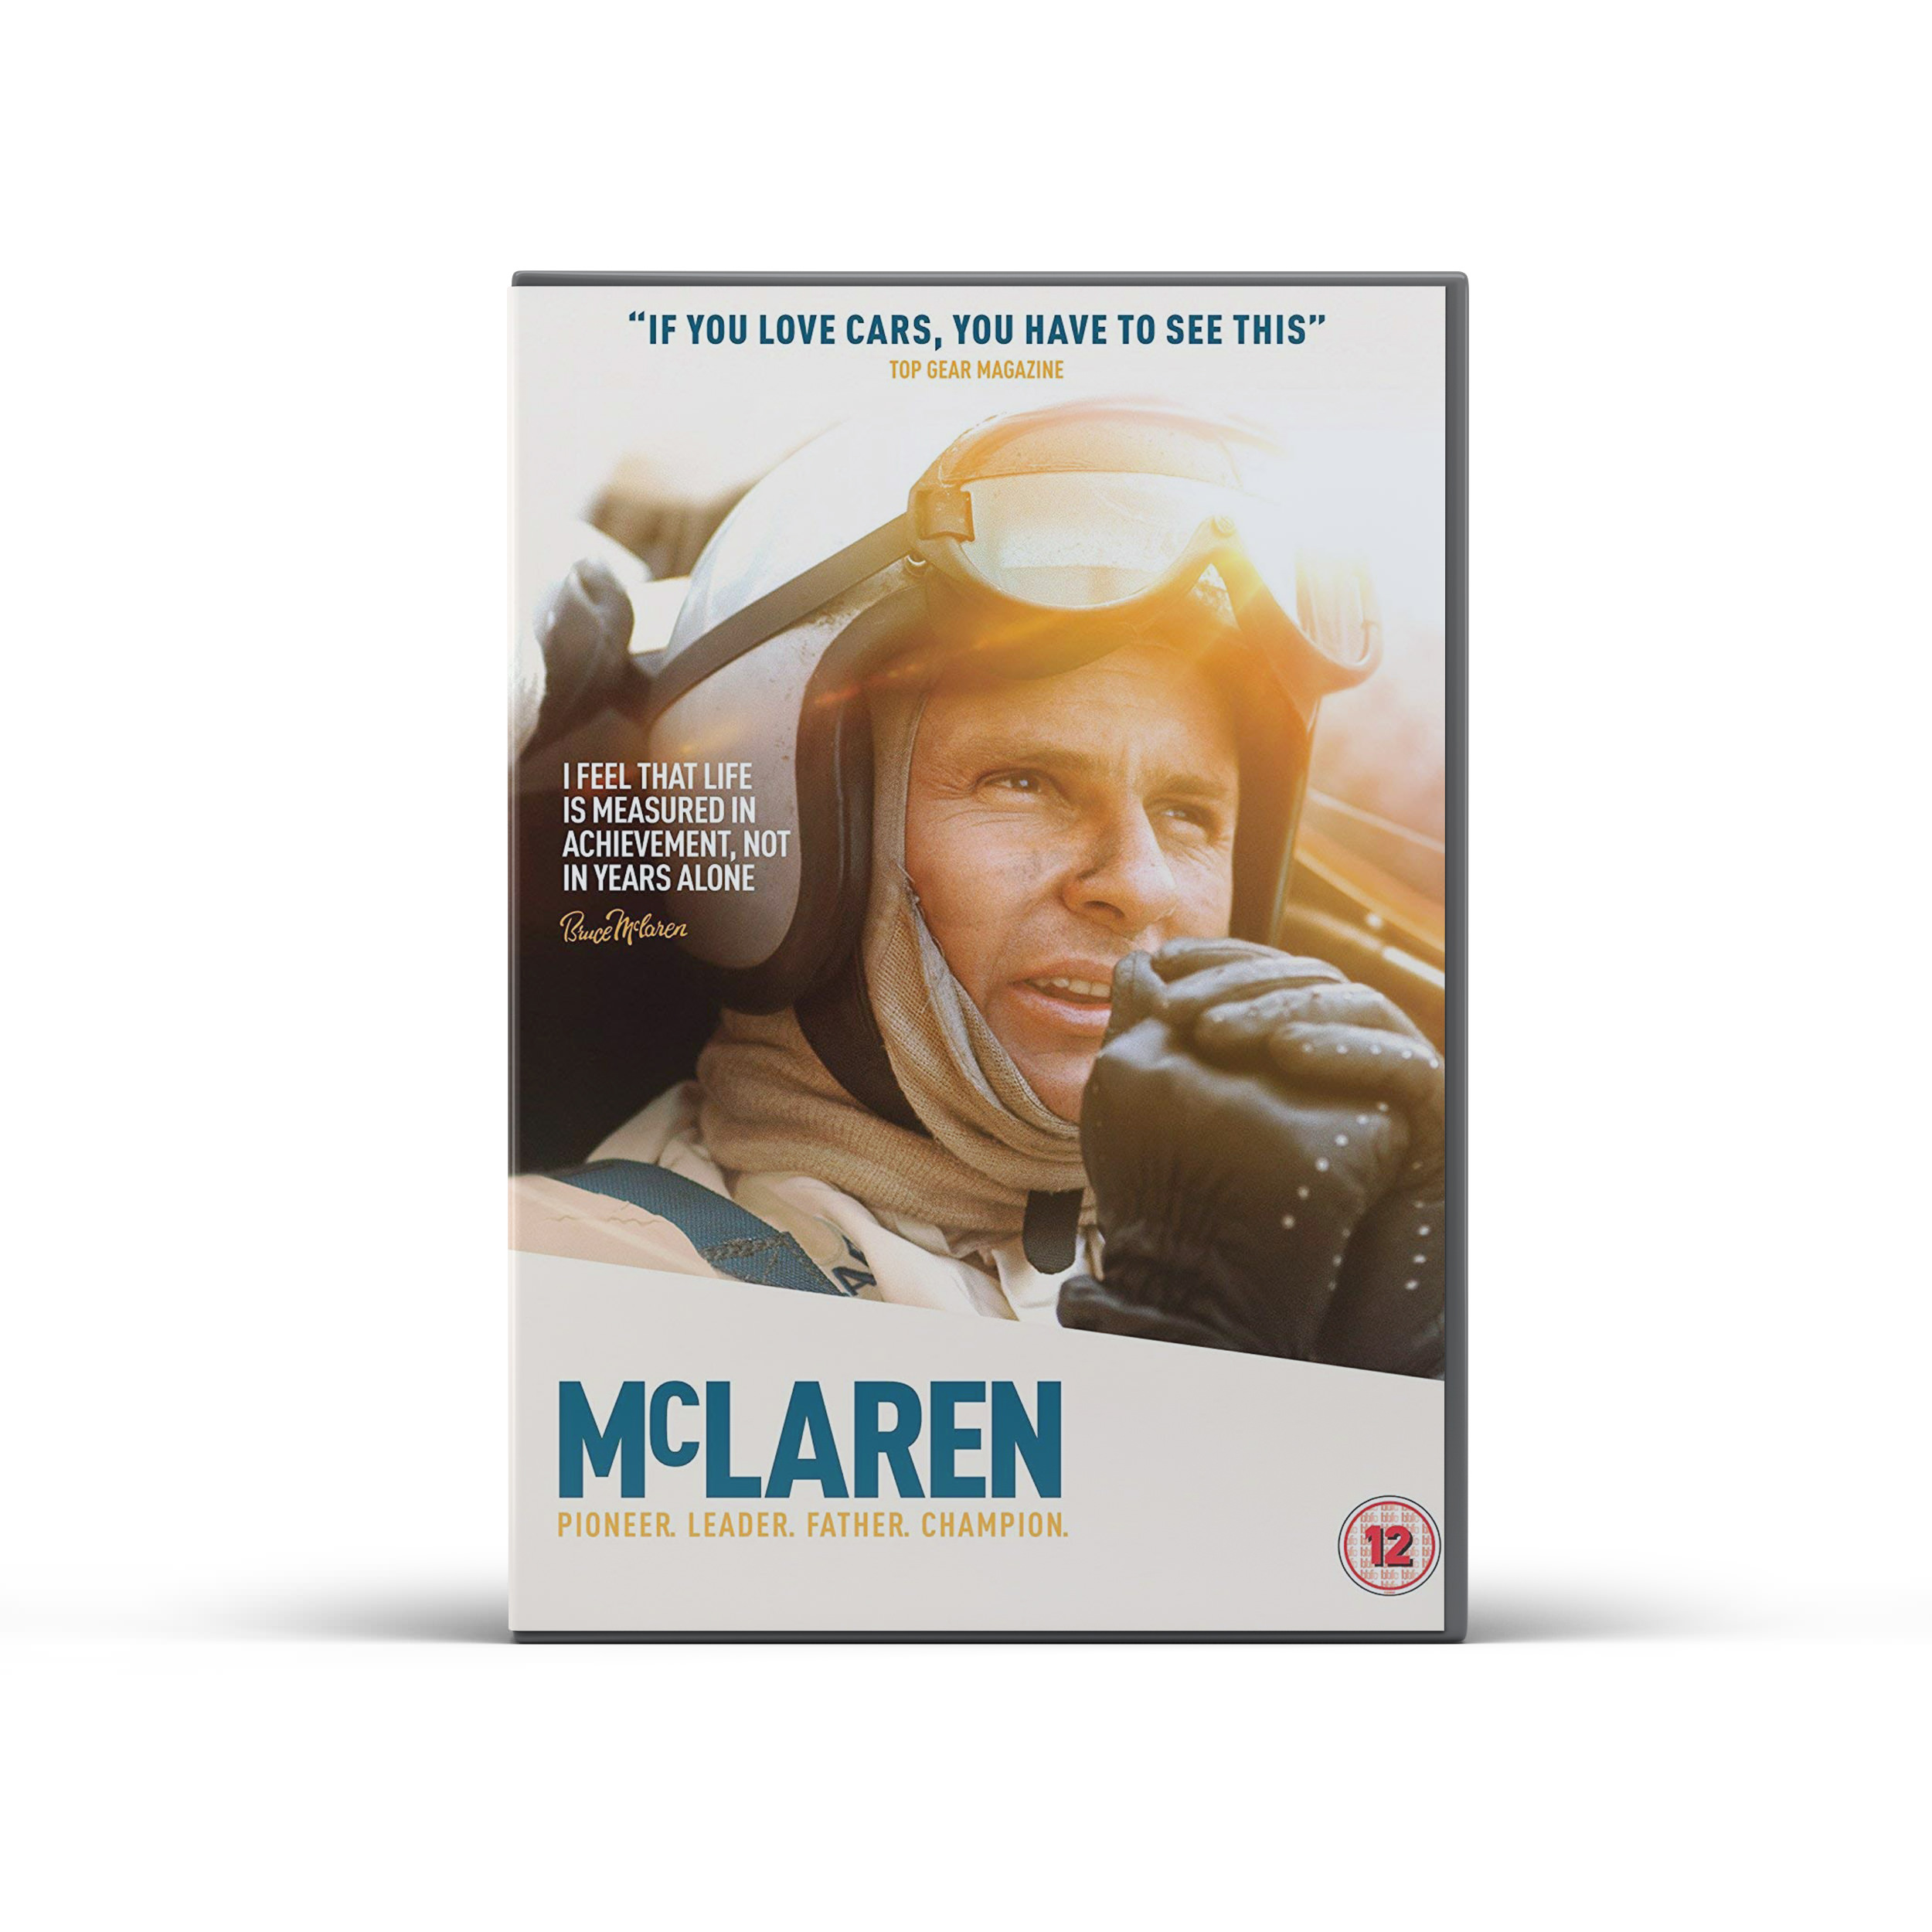 Product image for McLaren DVD